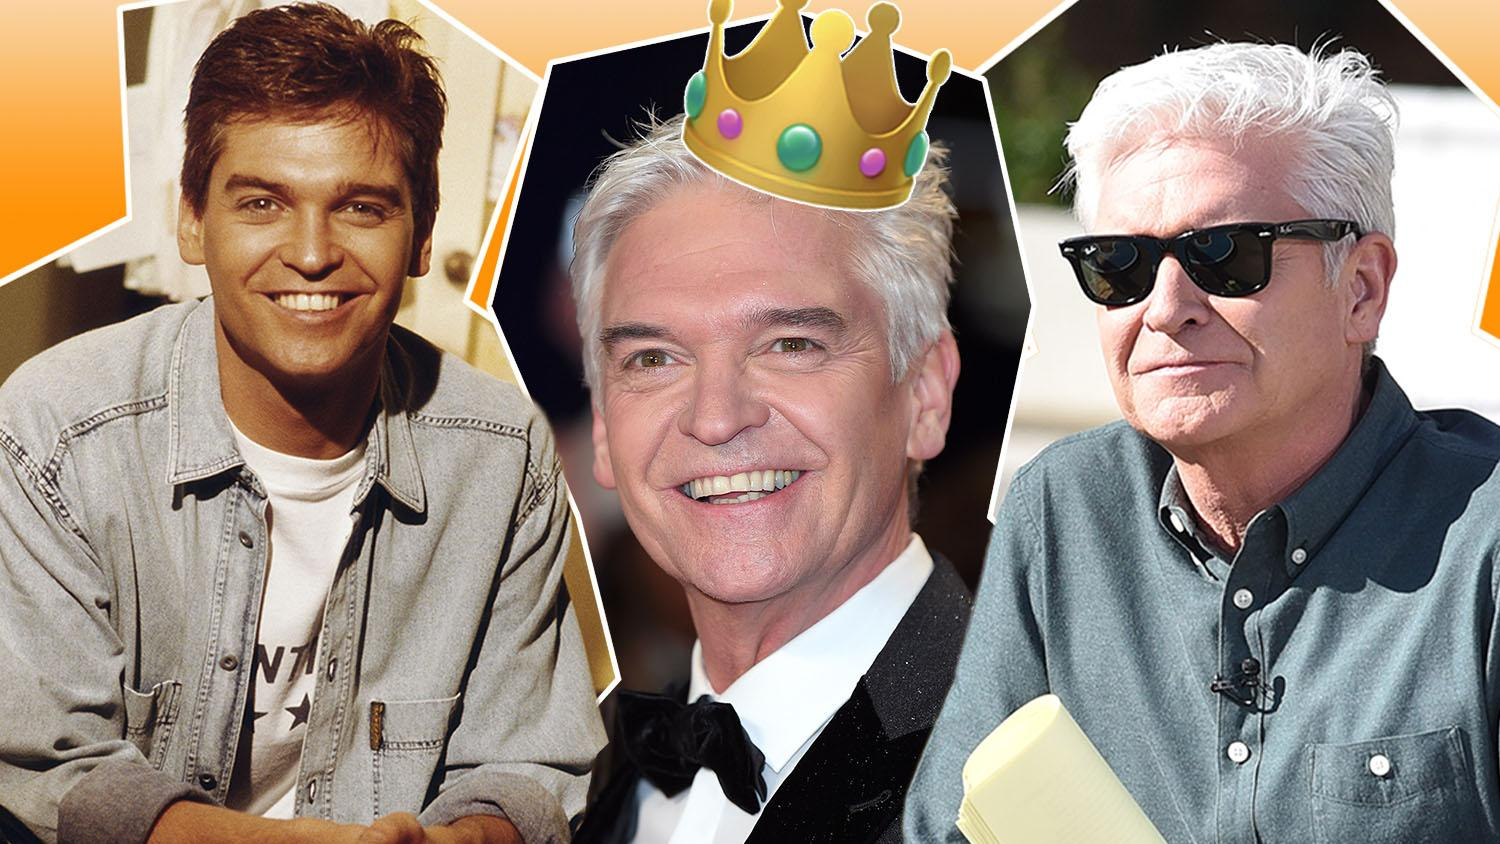 Phillip Schofield: Everything you need to know about the TV presenter